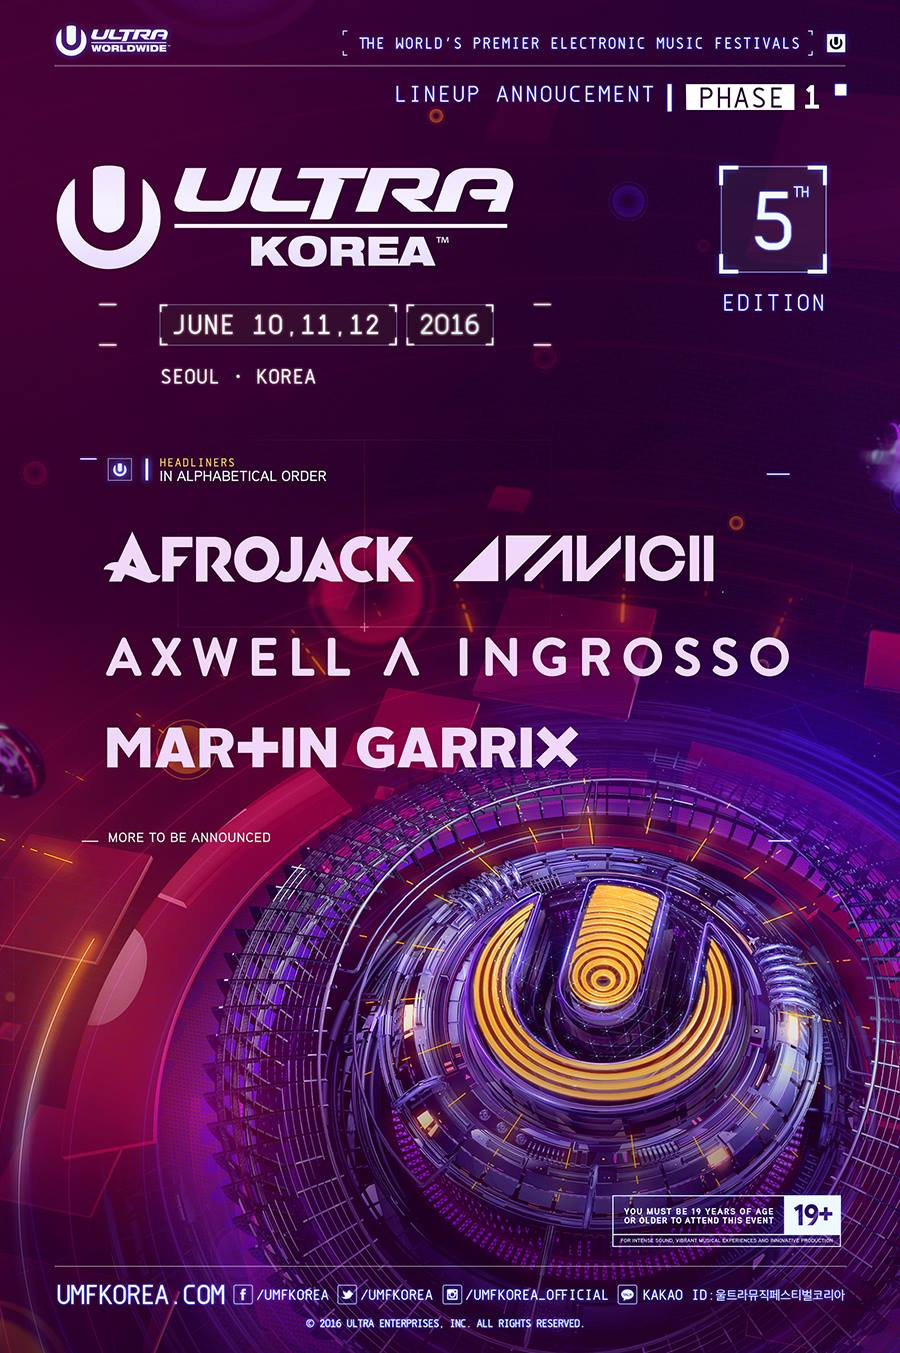 ULTRA KOREA 2016 FIRST LINEUP